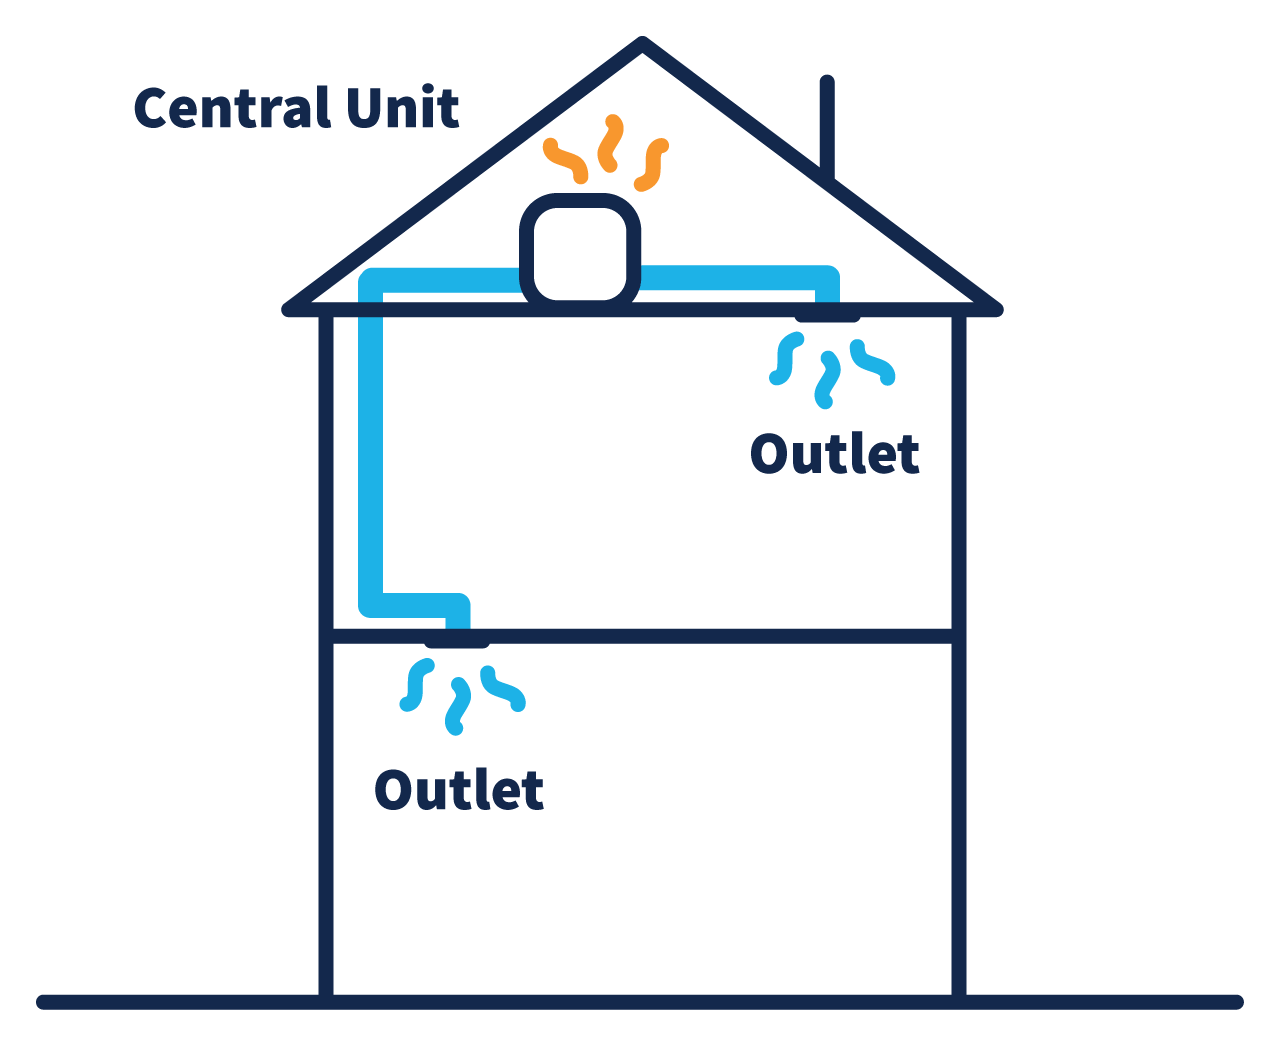 A diagram of a two story home, with a central unit in the attic letting out hot air, and tubing connecting the central unit to an outlet in the top story and an outlet in the bottom story.